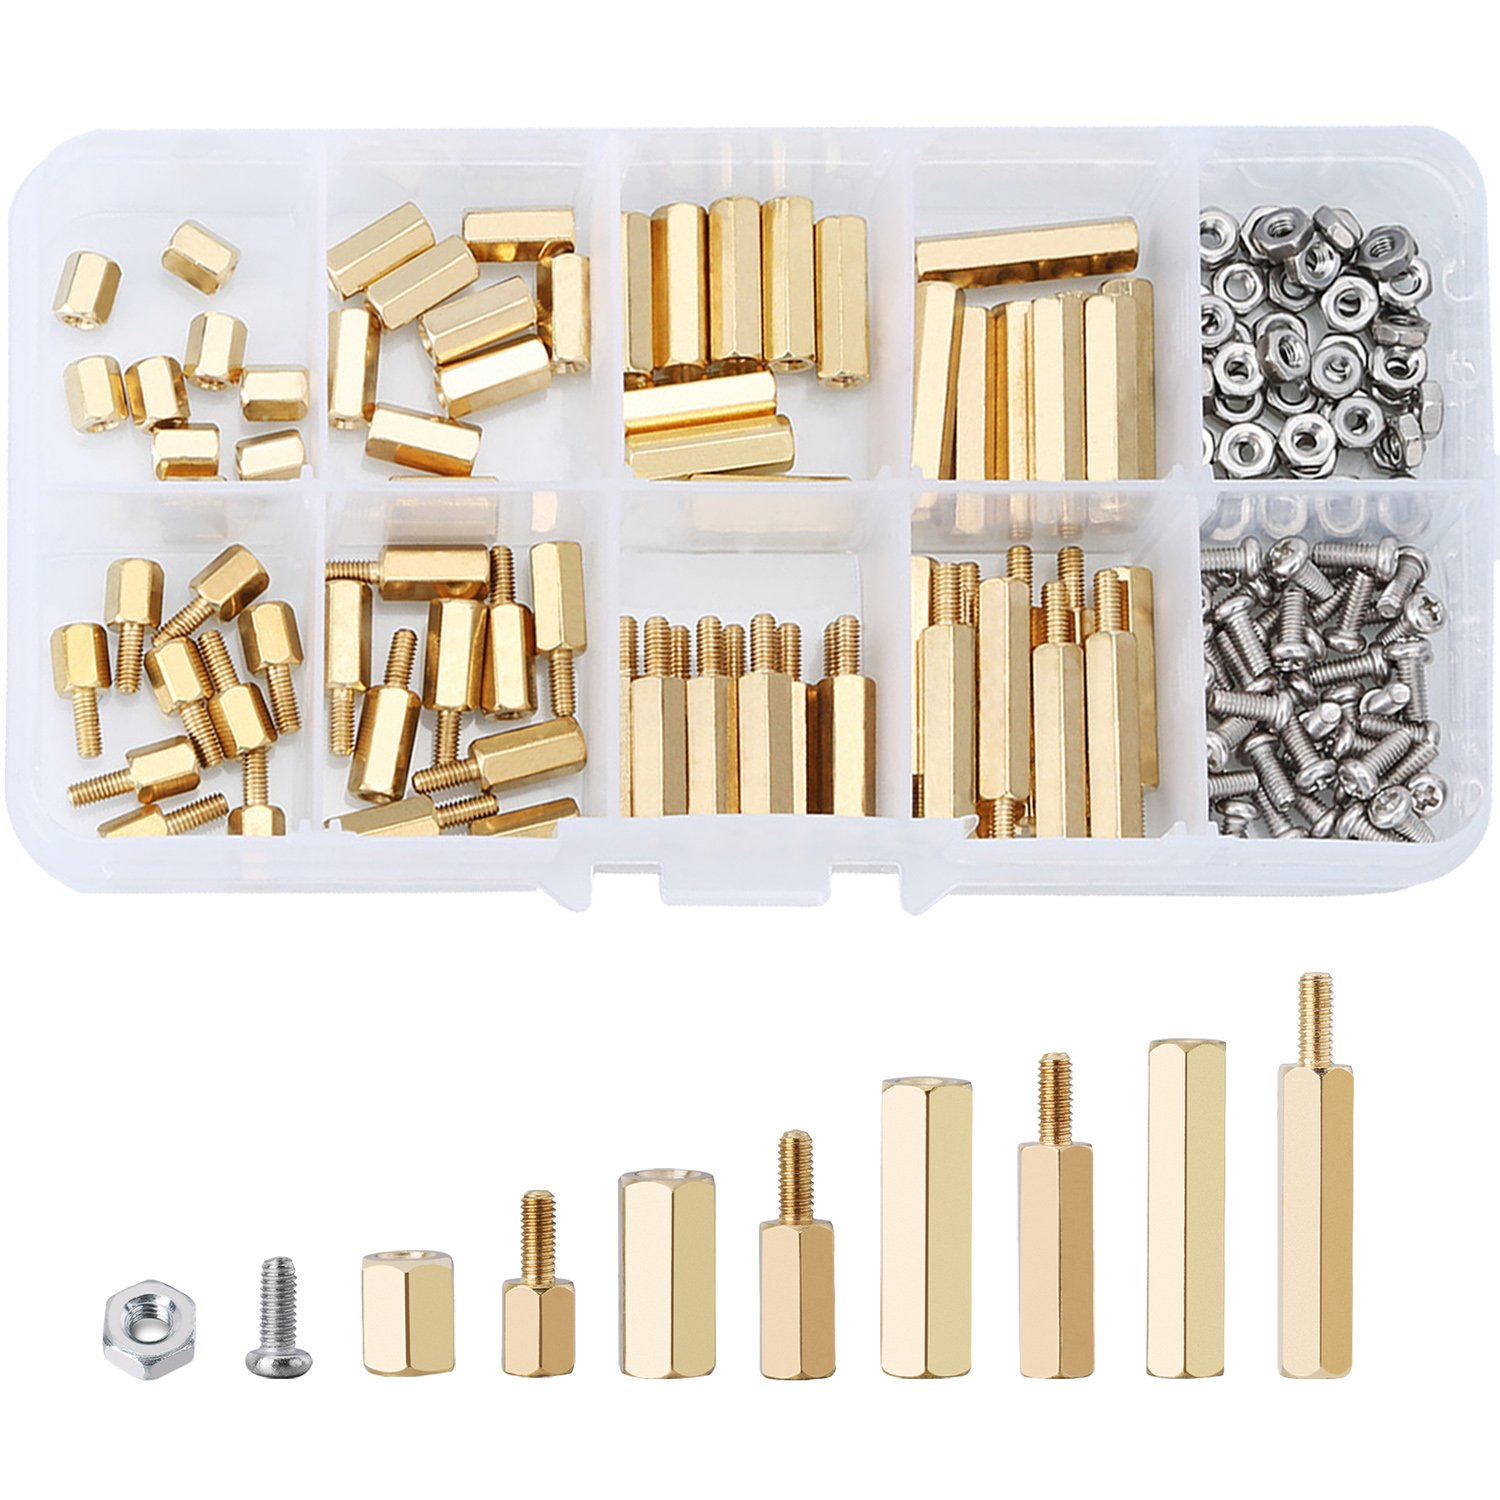 Details about  /750Pcs Brass Studs Pillars Standoff Spacers Screw Isolation Spacing Screws Kit